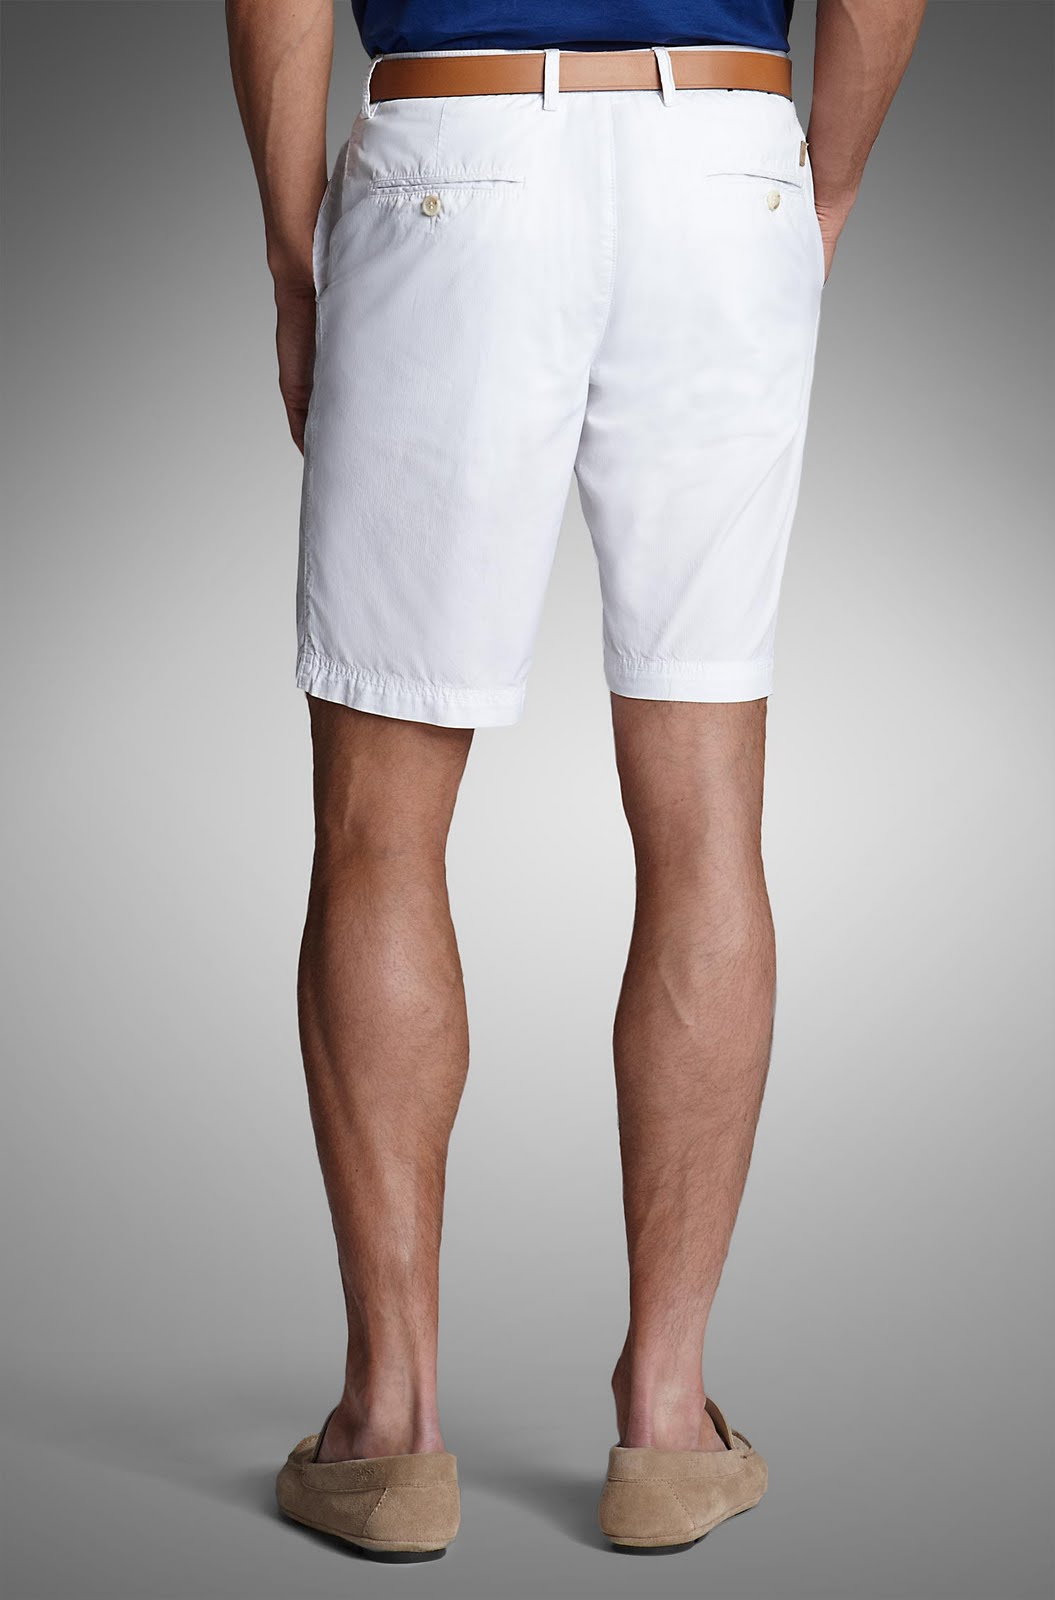 Off-White. See more colors. Price $ to $ Go. Please enter a minimum and maximum price. $0 - $ $10 - $ $15 - $ Men's Cargo Shorts. Showing 48 of 73 results that match your query. Search Product Result. Wrangler Big Men's Twill Cargo Short. Product Image. Price $ Product Title.